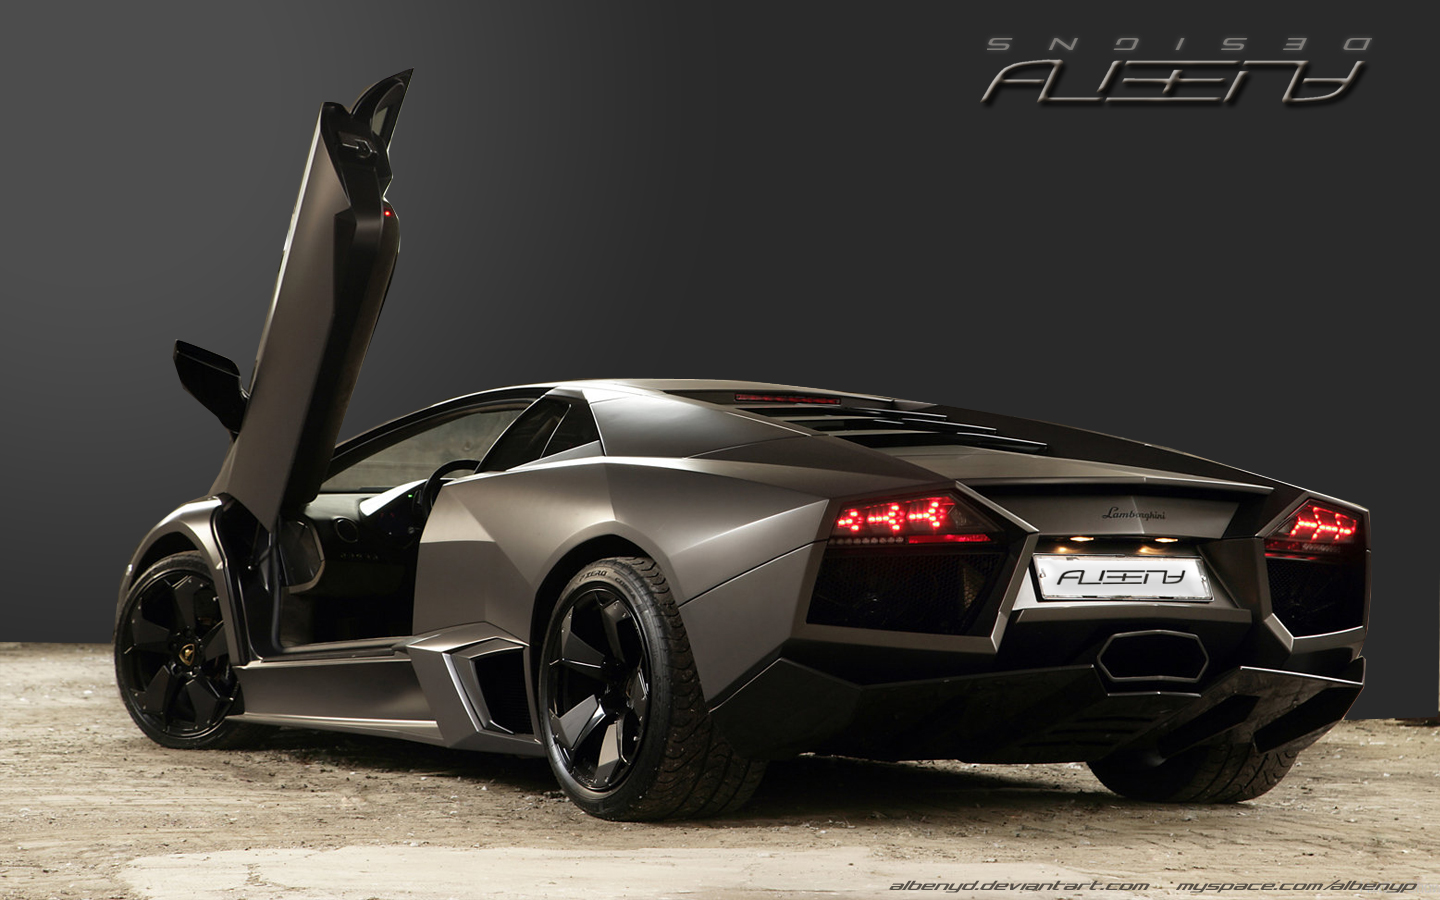 Lamborghini Reventon HD Wallpapers Beautiful Wallpapers 1440x900